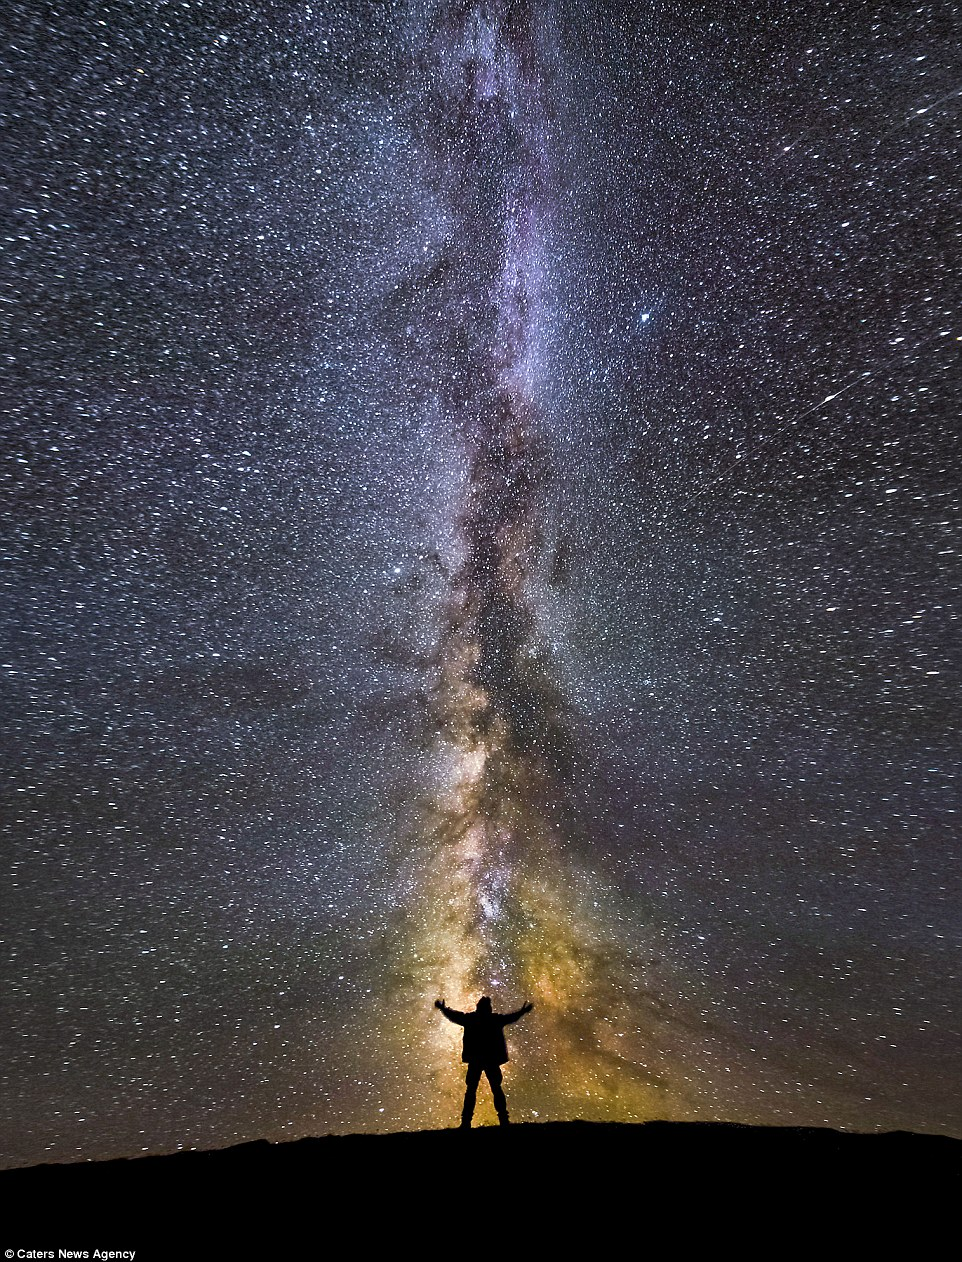 HQ Milky Way Wallpapers | File 505.34Kb